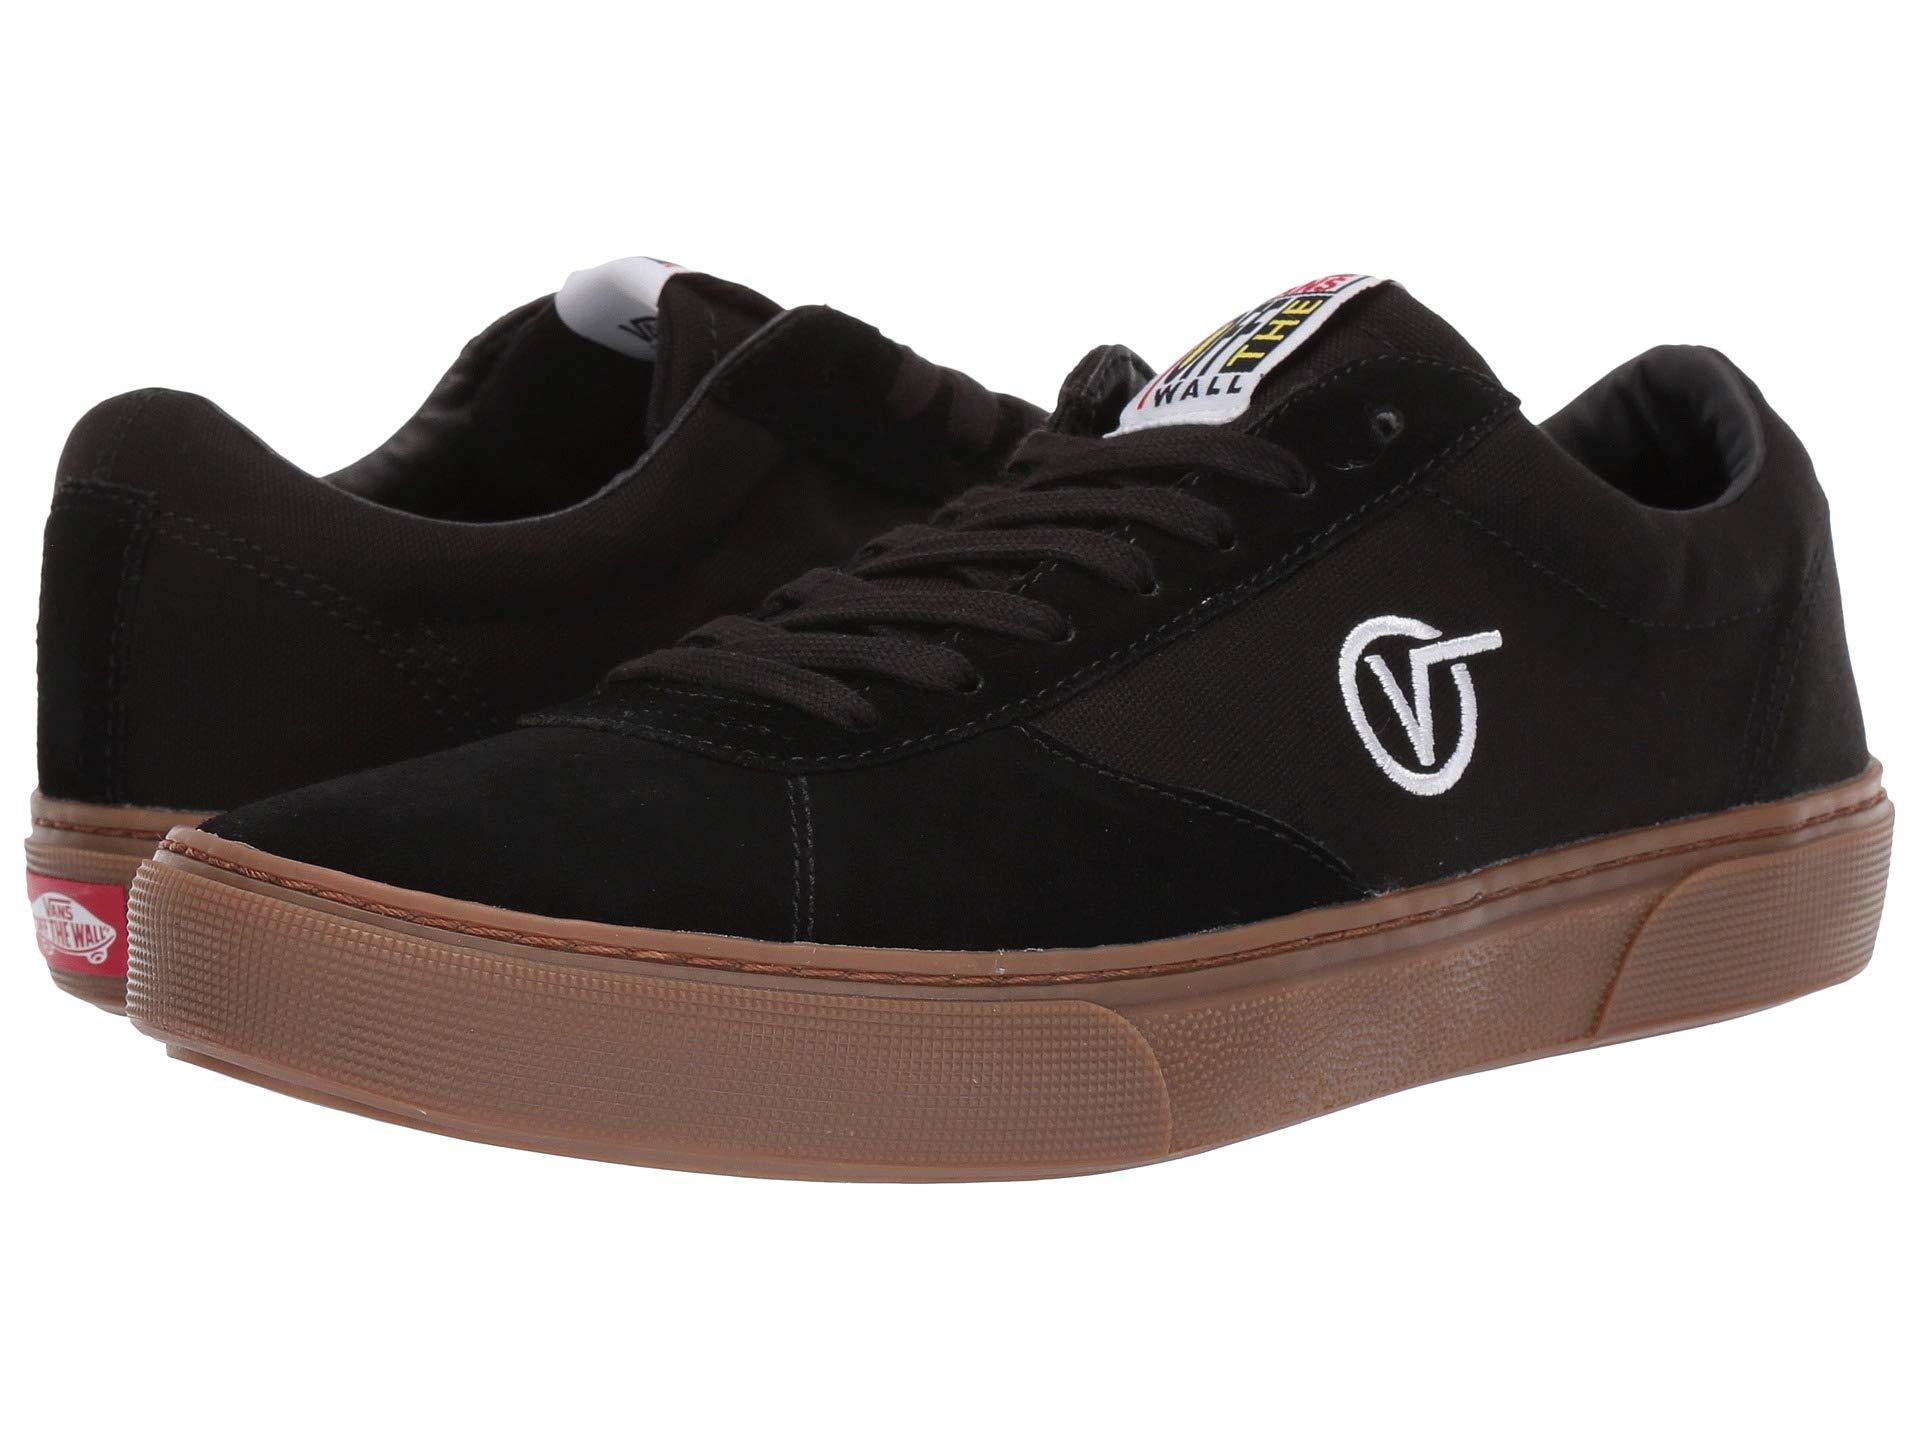 11752ef0689e Lyst - Vans Paradoxxx (yolk Yellow) Shoes in Black for Men